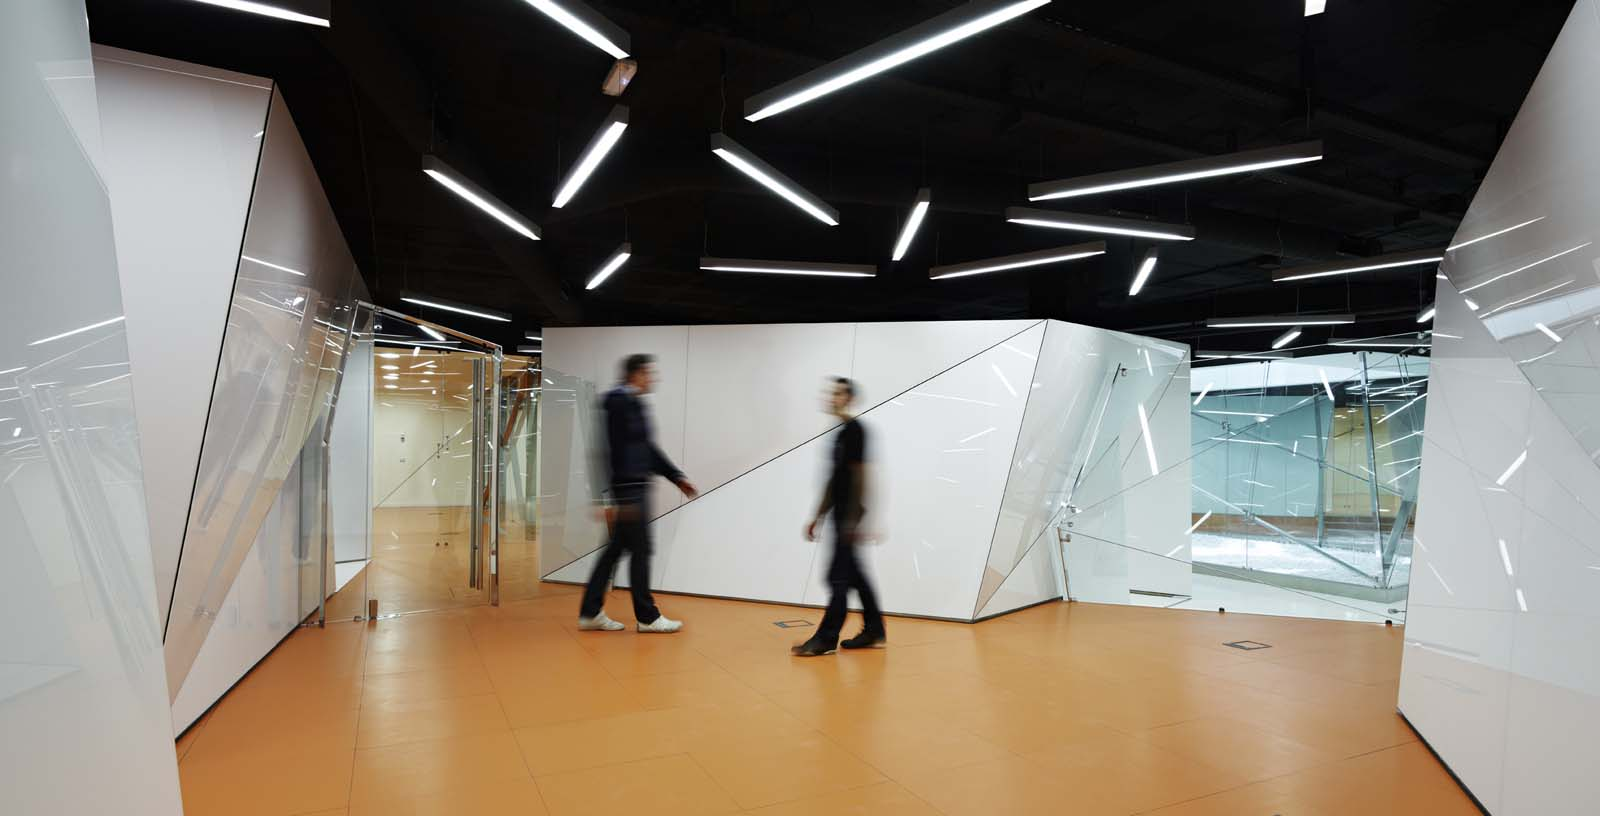 Offices_of_the_IT_and_telecommunication_services_02_Architecture_IDOM_photos_Eugeni_Pons